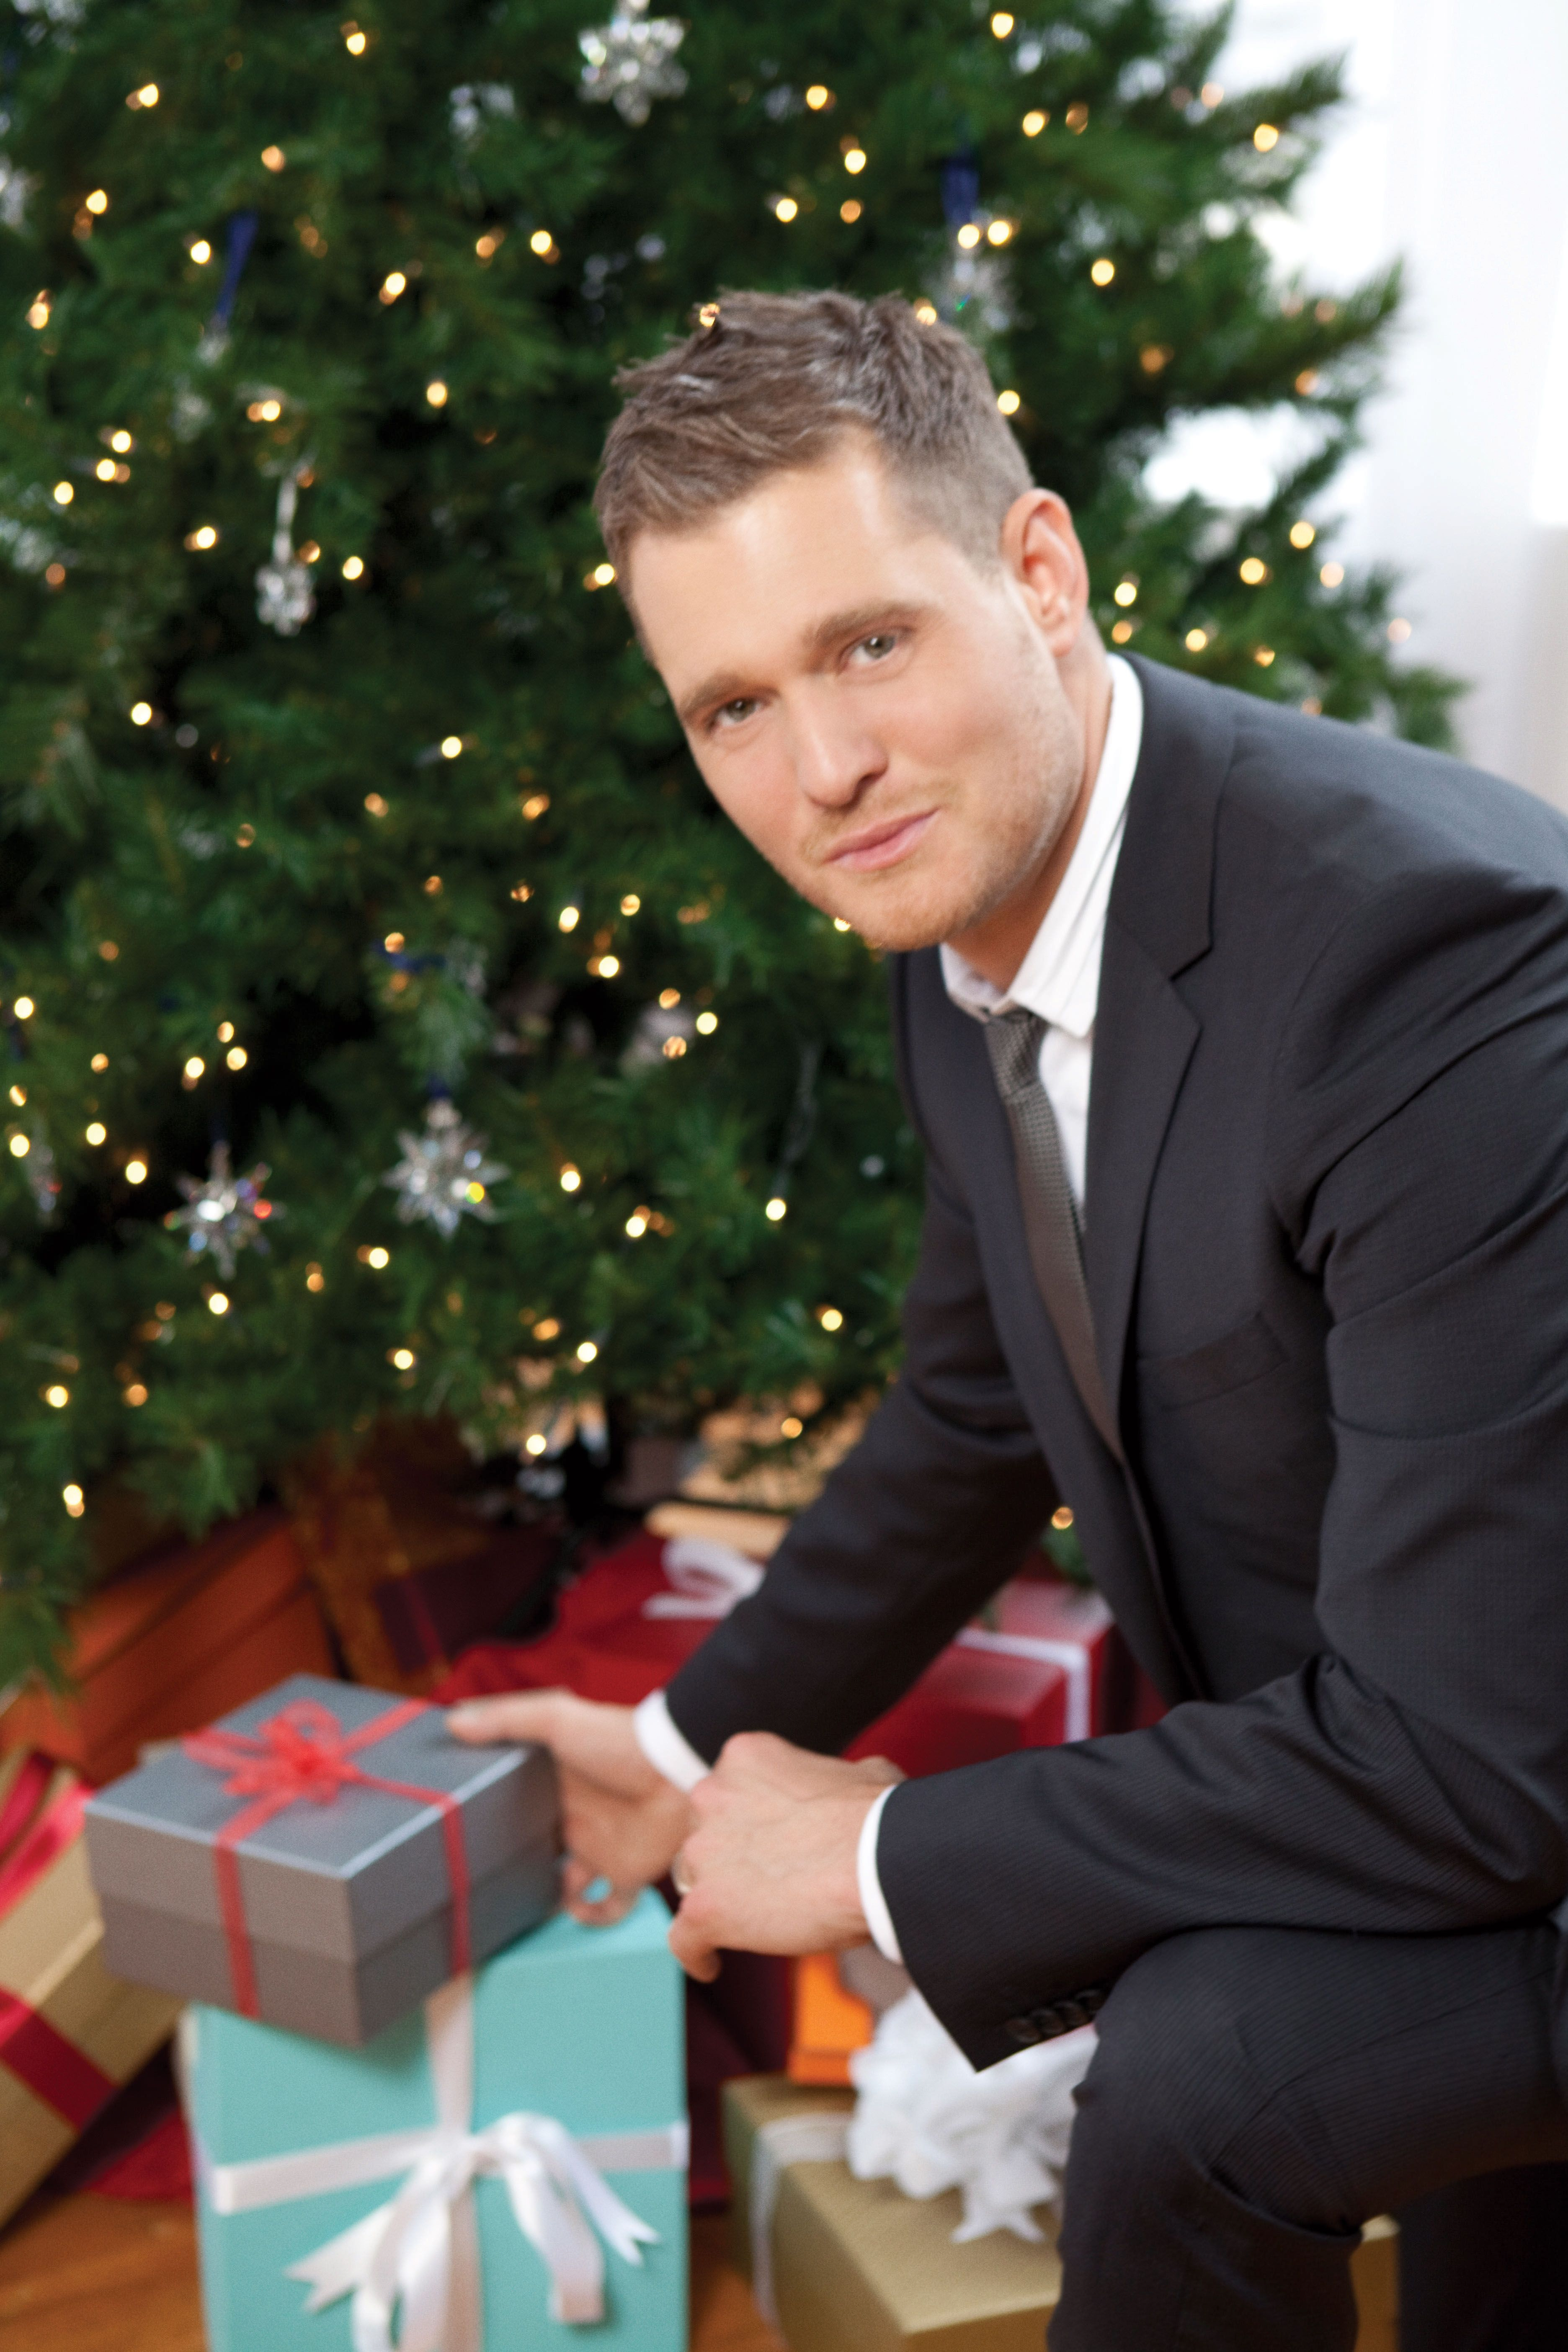 Michael Buble photo 29 of 44 pics, wallpapers